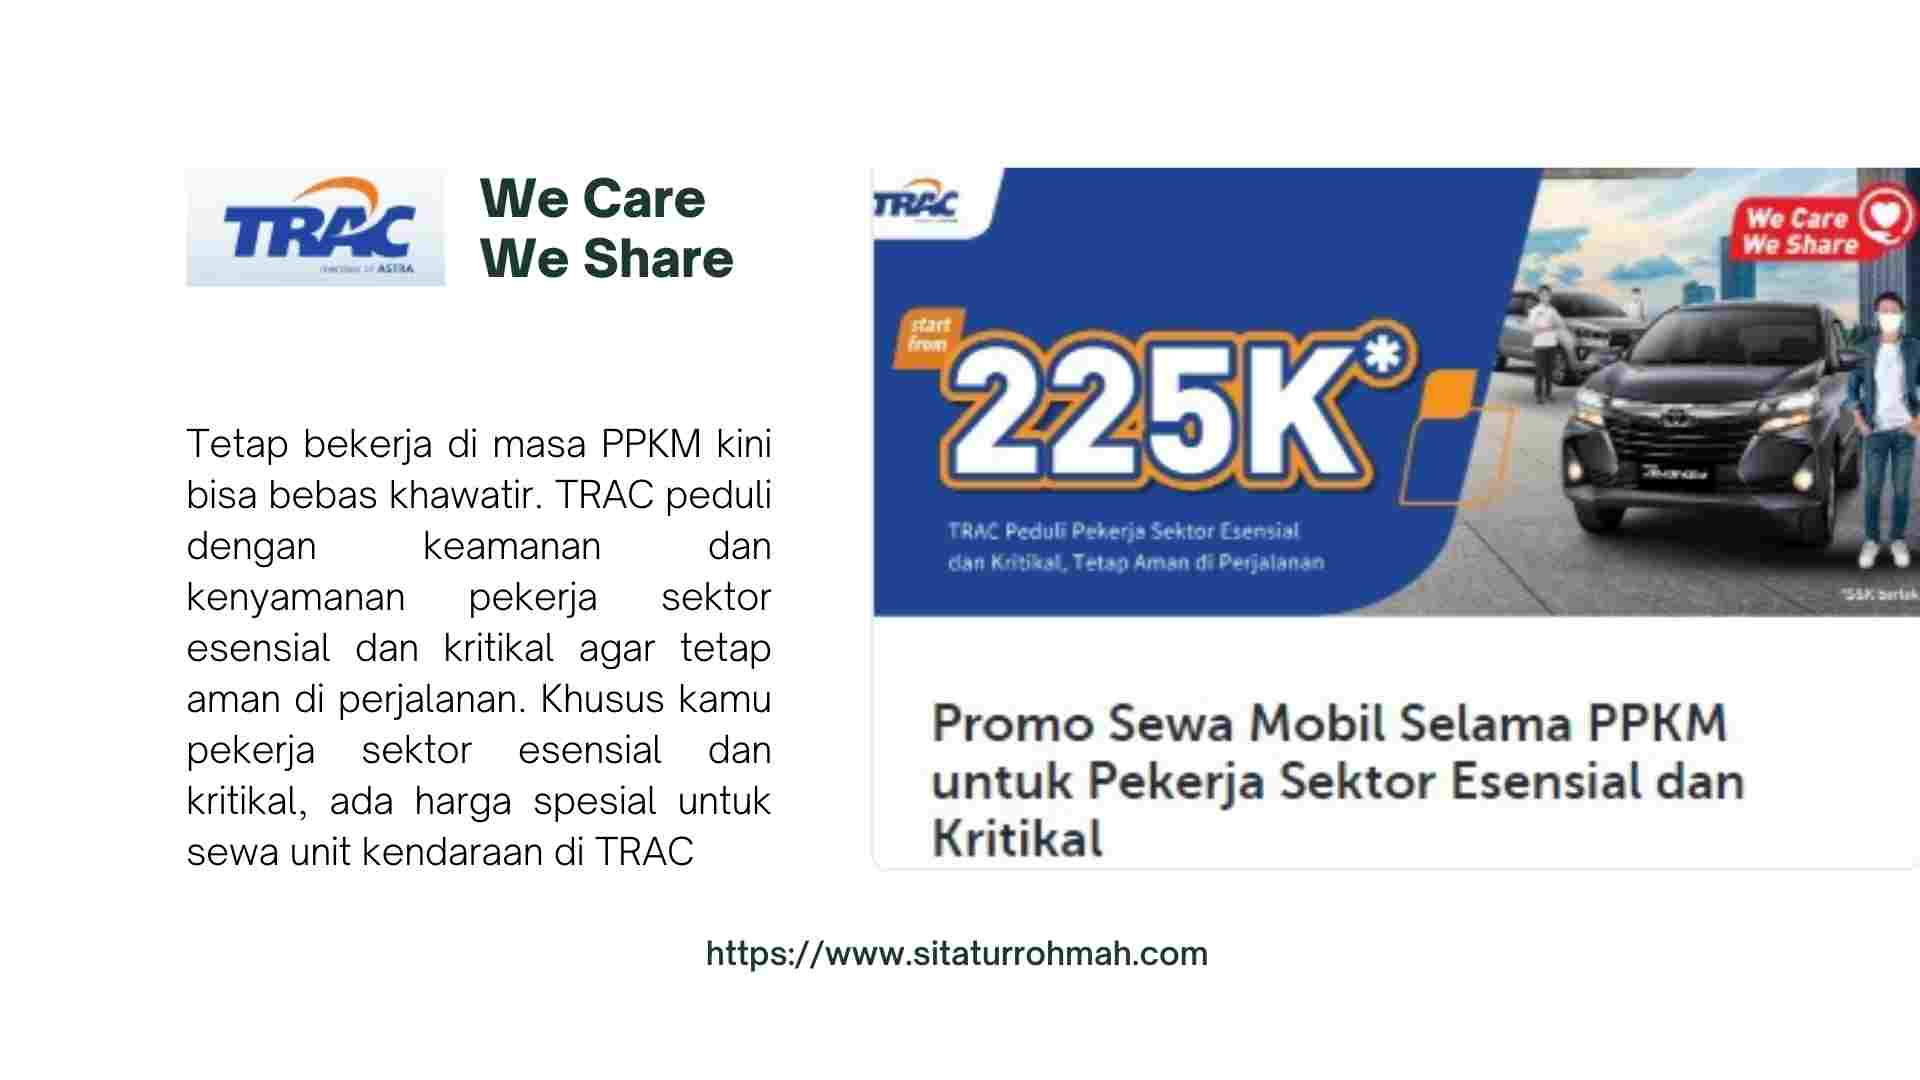 trac we care we share